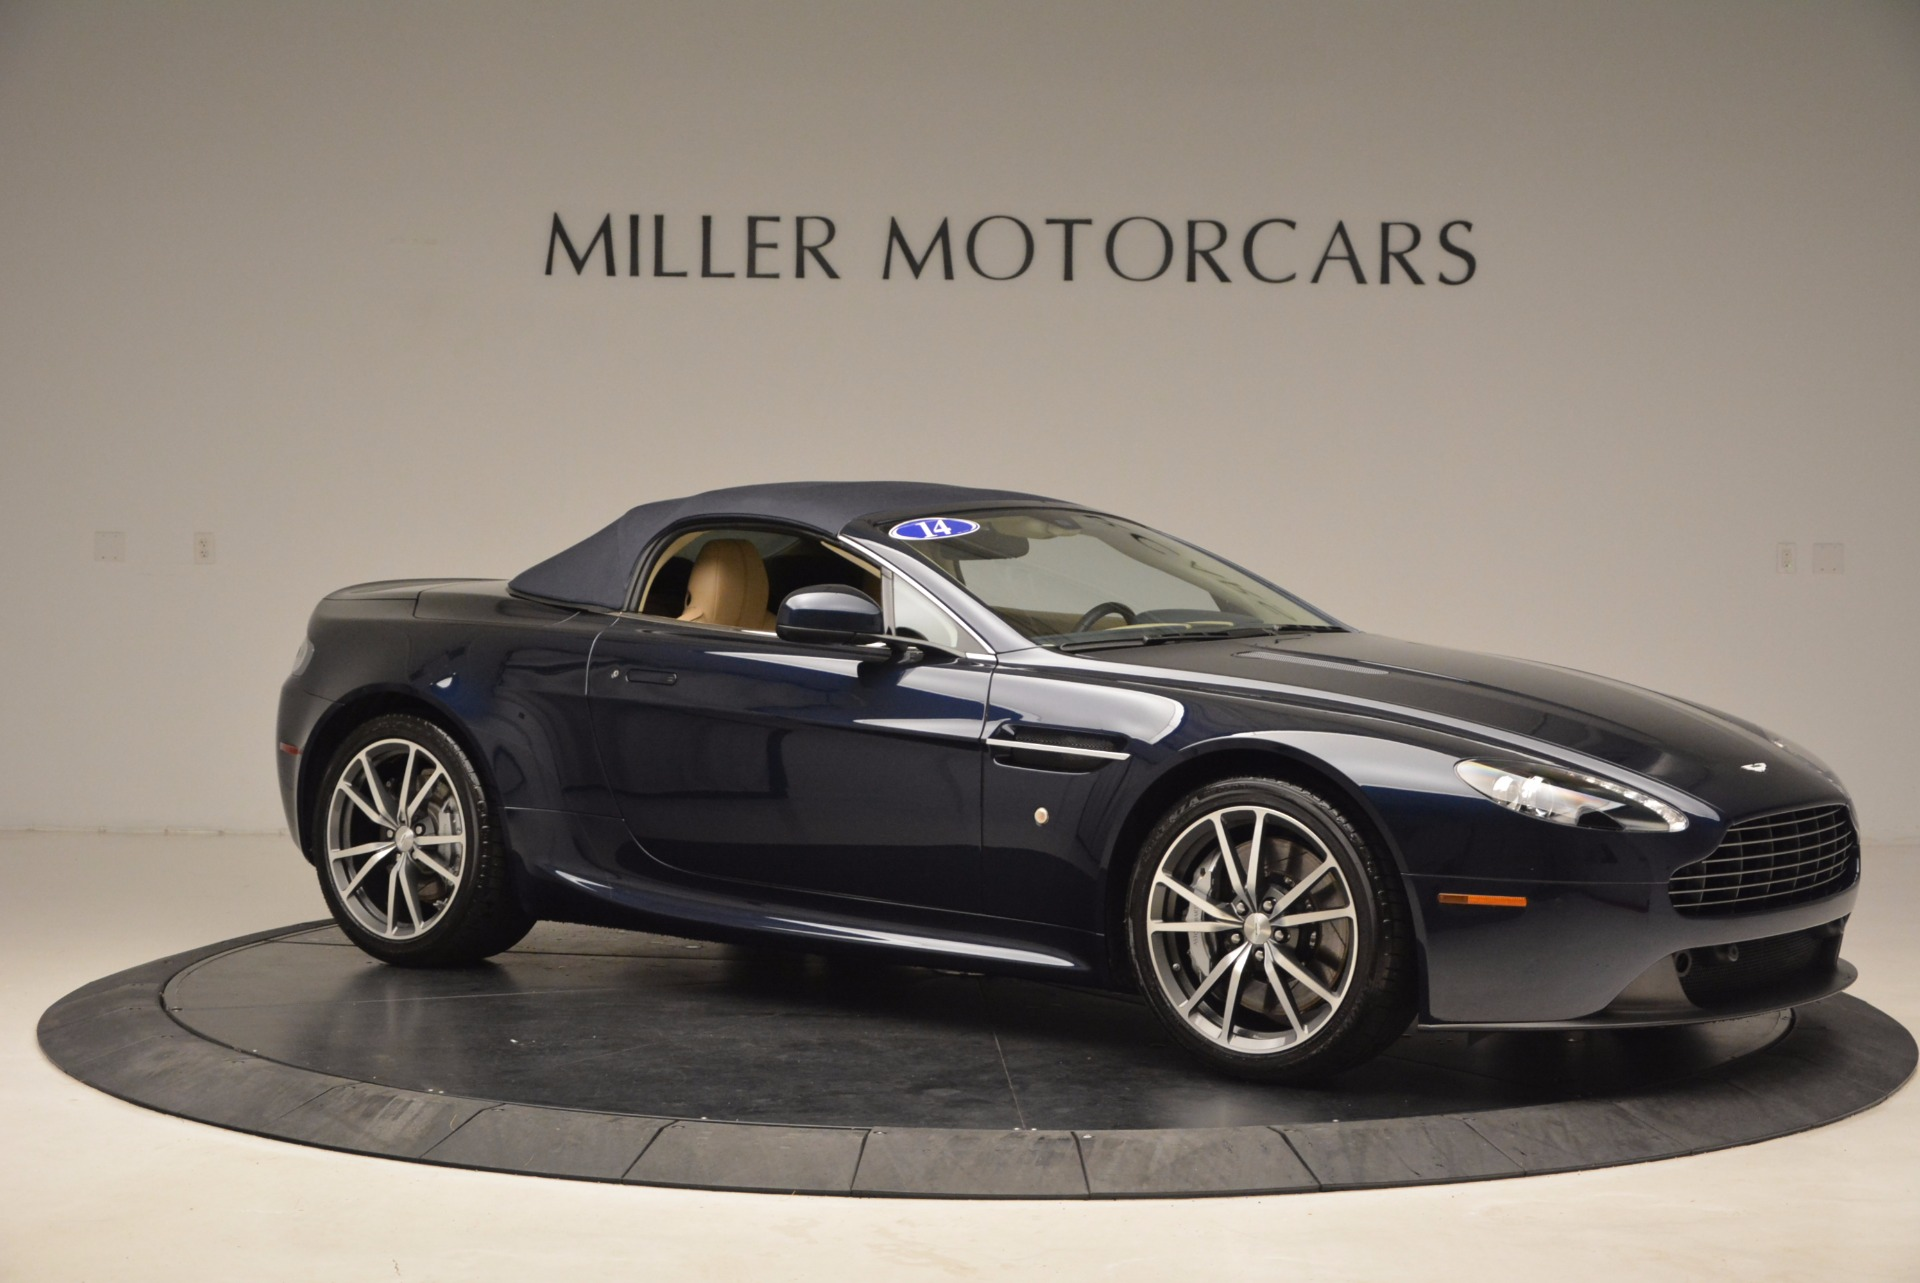 Used 2014 Aston Martin V8 Vantage Roadster For Sale In Greenwich, CT. Alfa Romeo of Greenwich, 7282 1623_p17